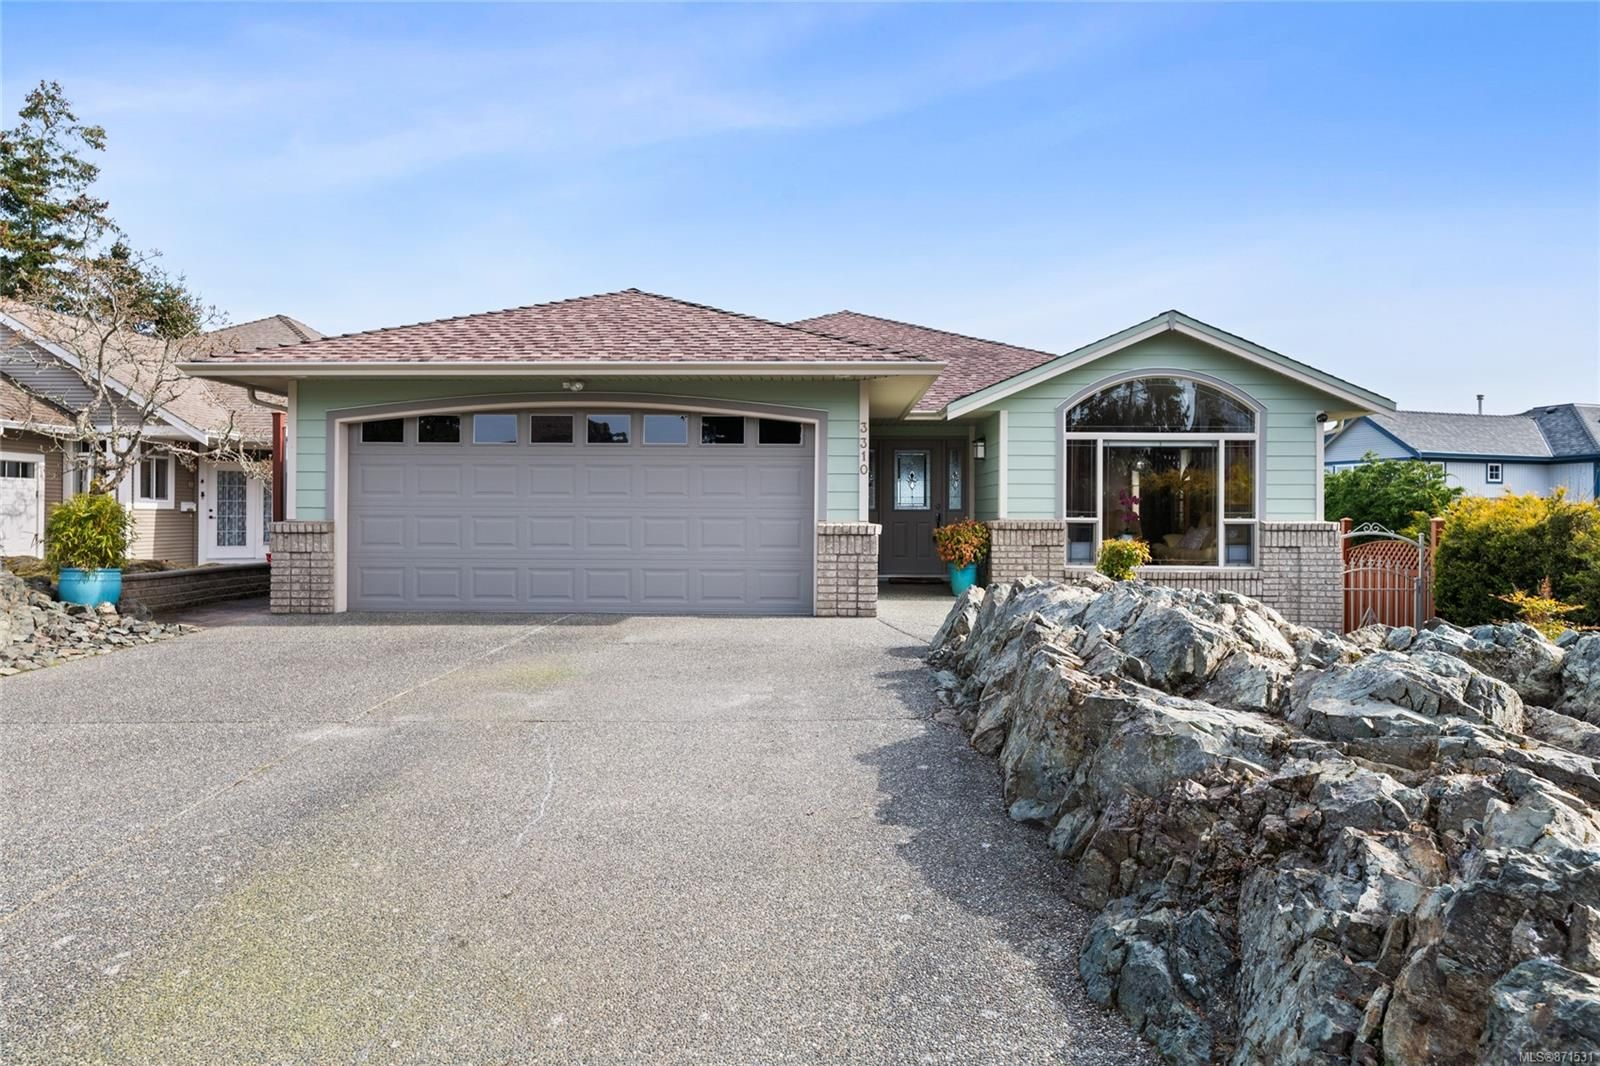 Main Photo: 3310 Wavecrest Dr in : Na Hammond Bay House for sale (Nanaimo)  : MLS®# 871531